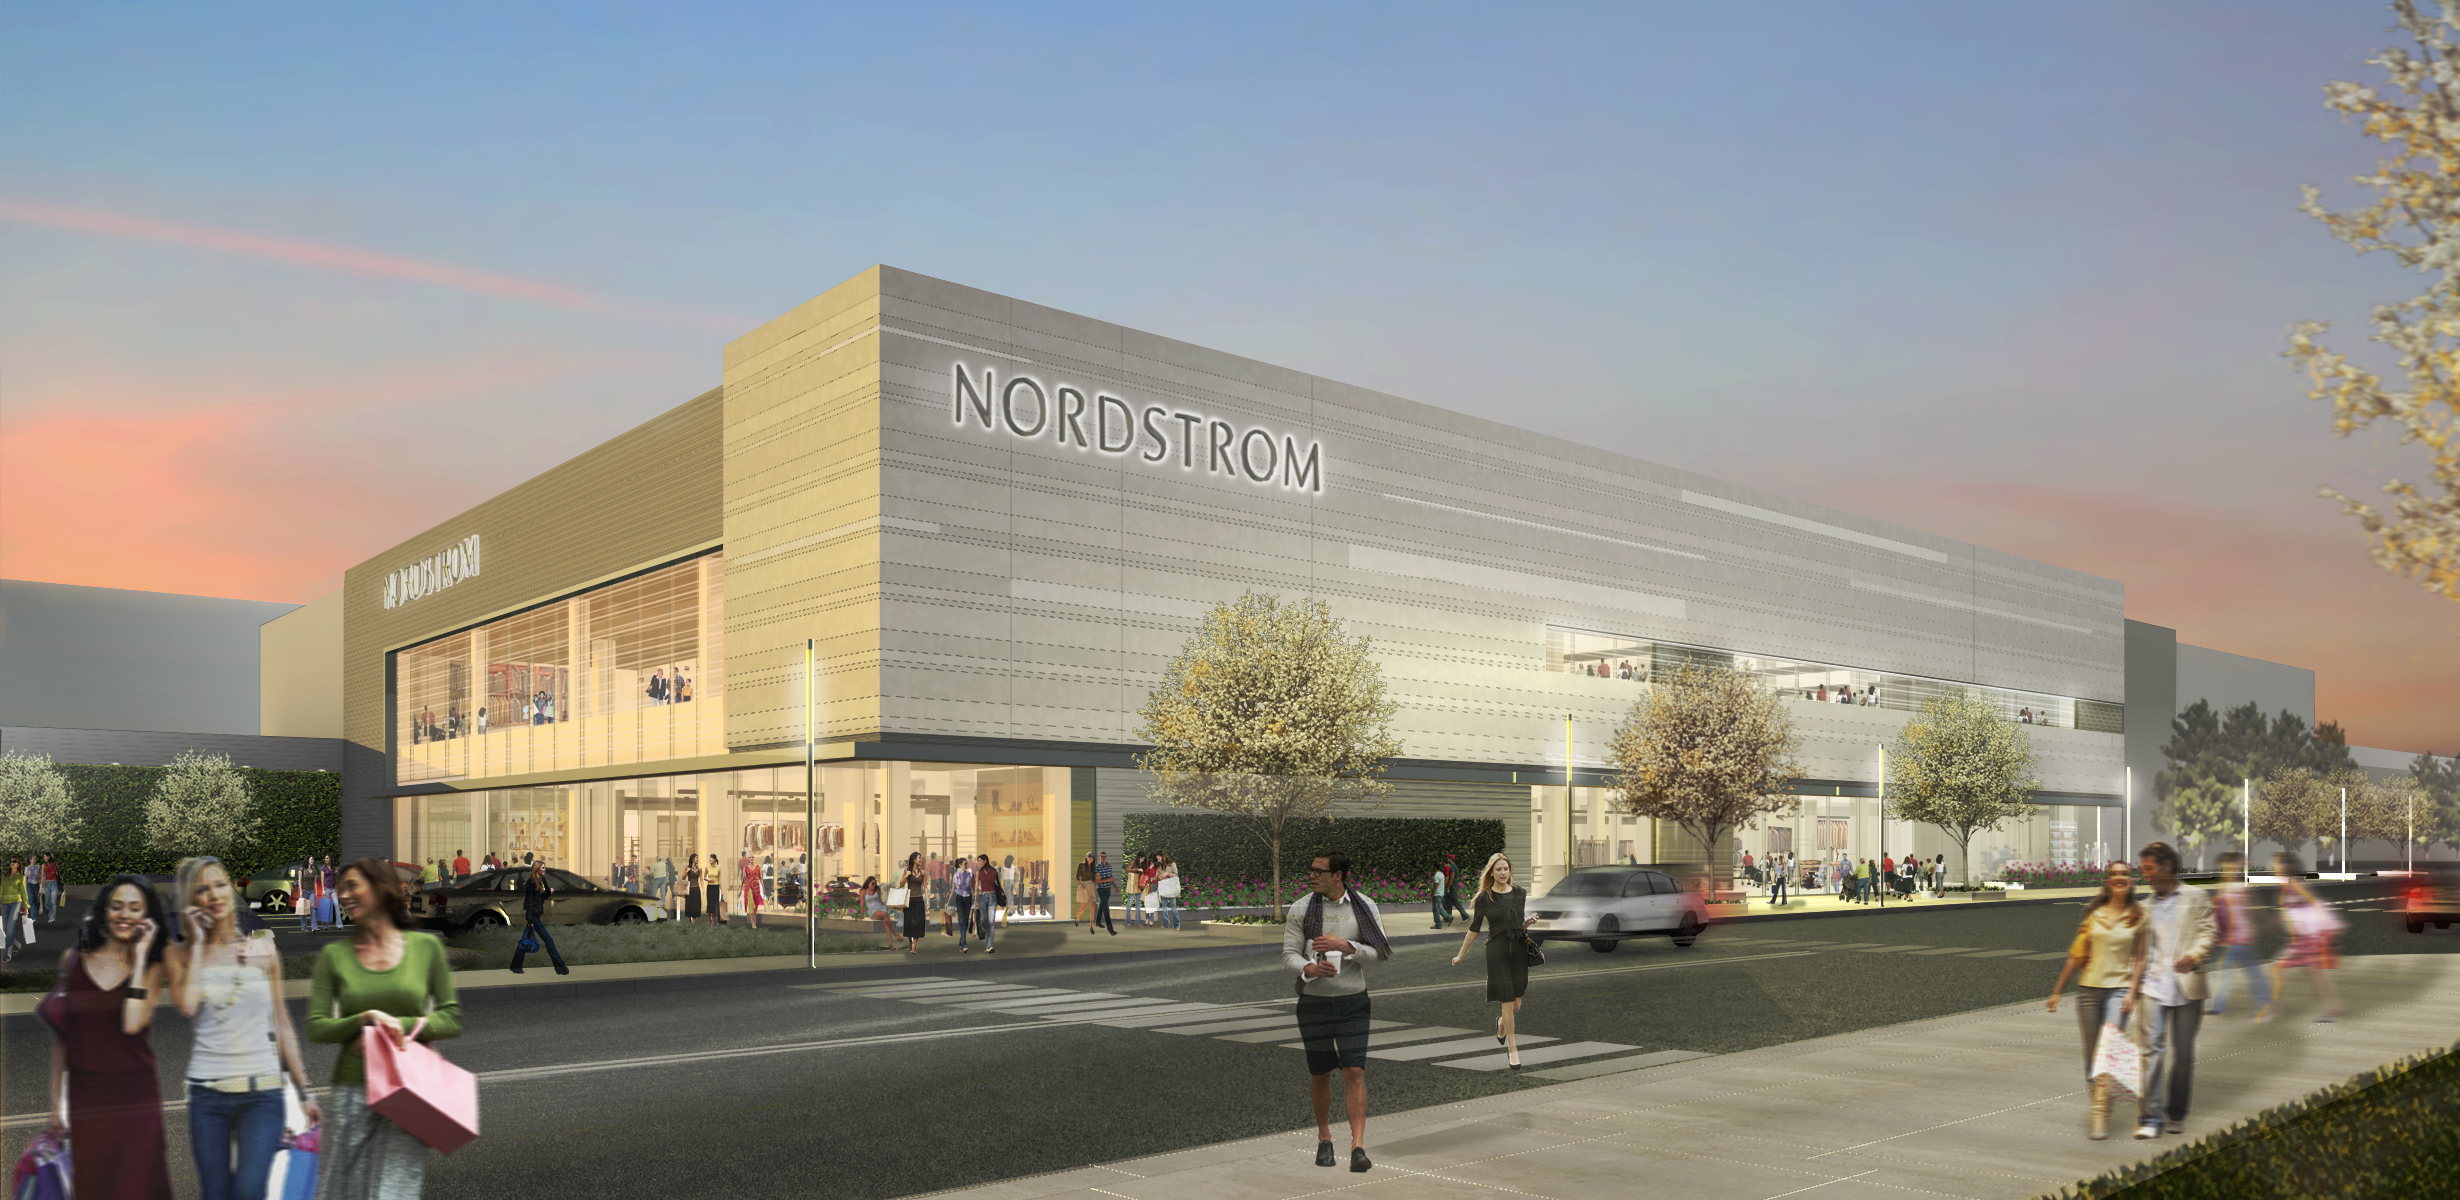 Nordstrom Fashion Show Mall